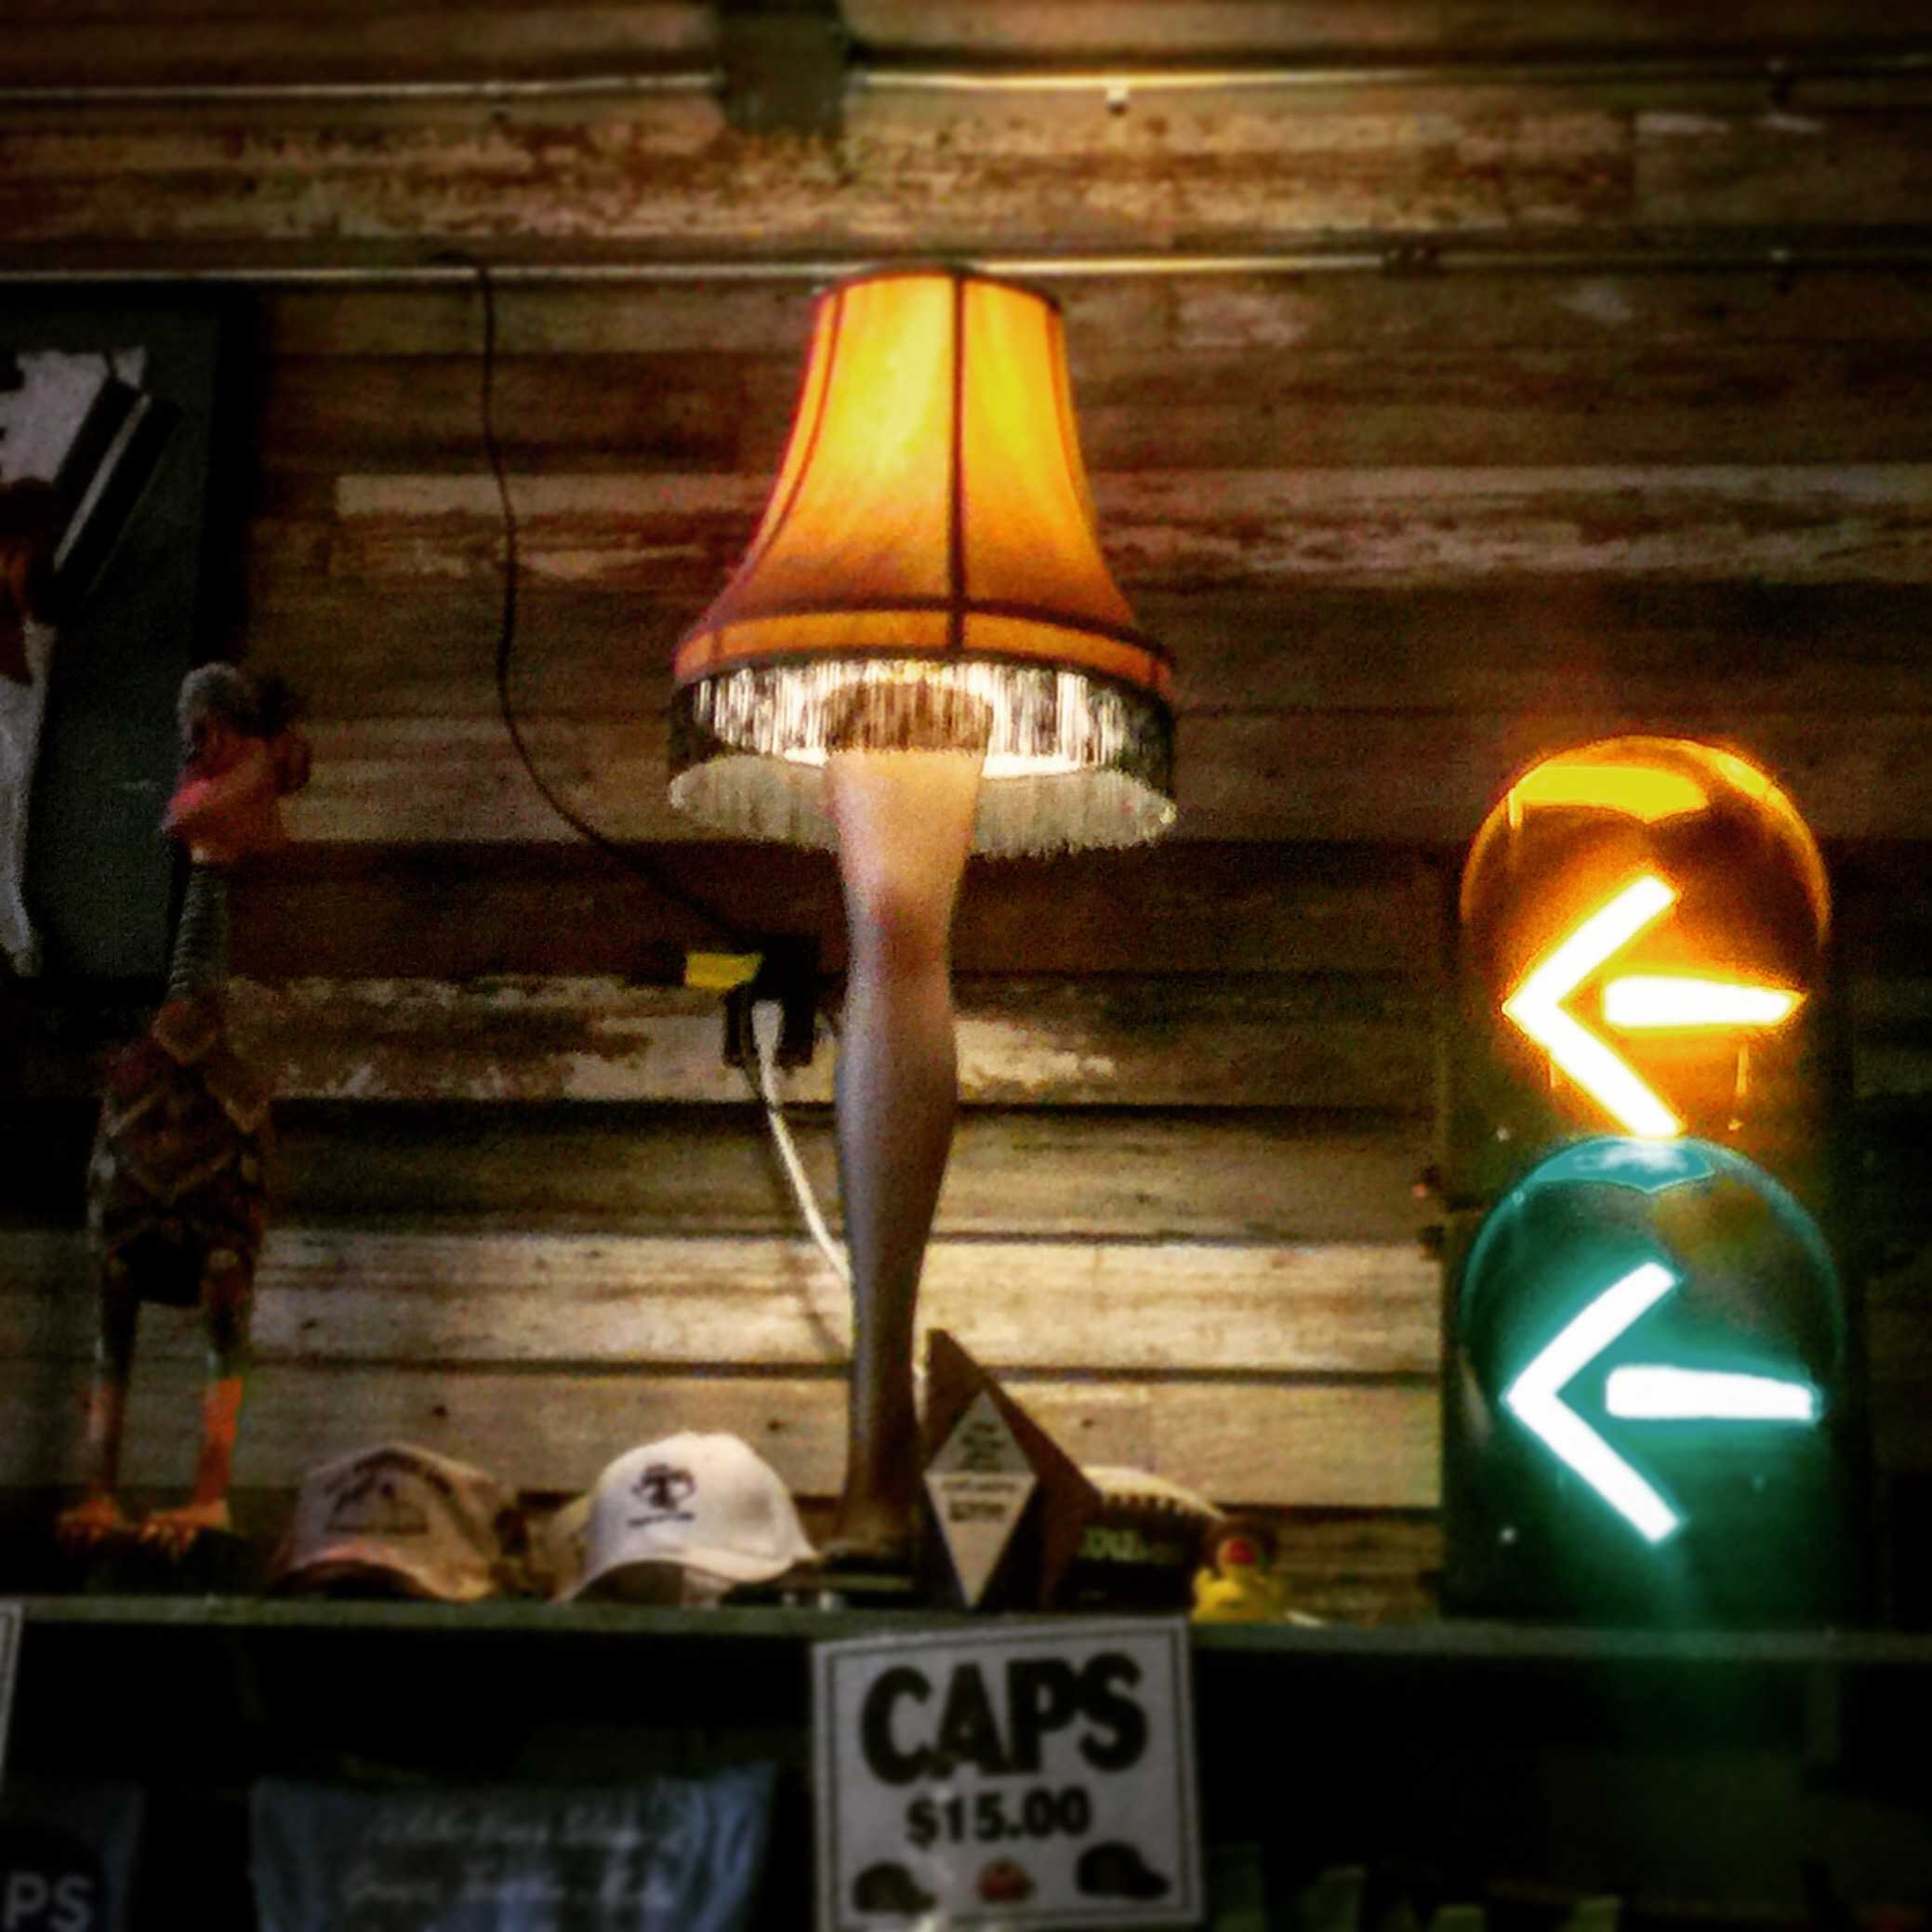 Who doesn't have a leg lamp??!